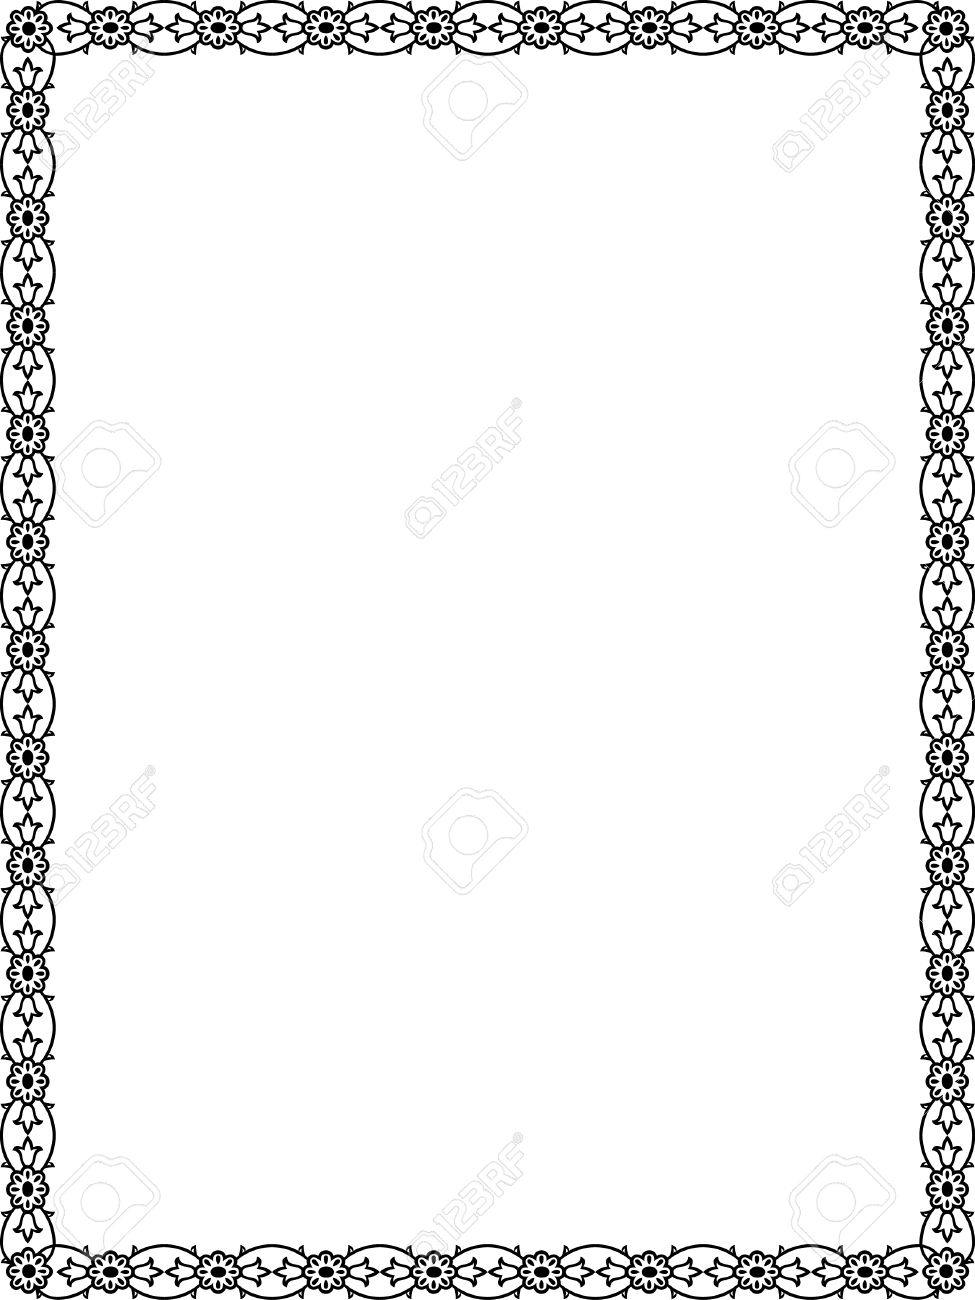 Flowers and plant leaves border frame, Black and White.